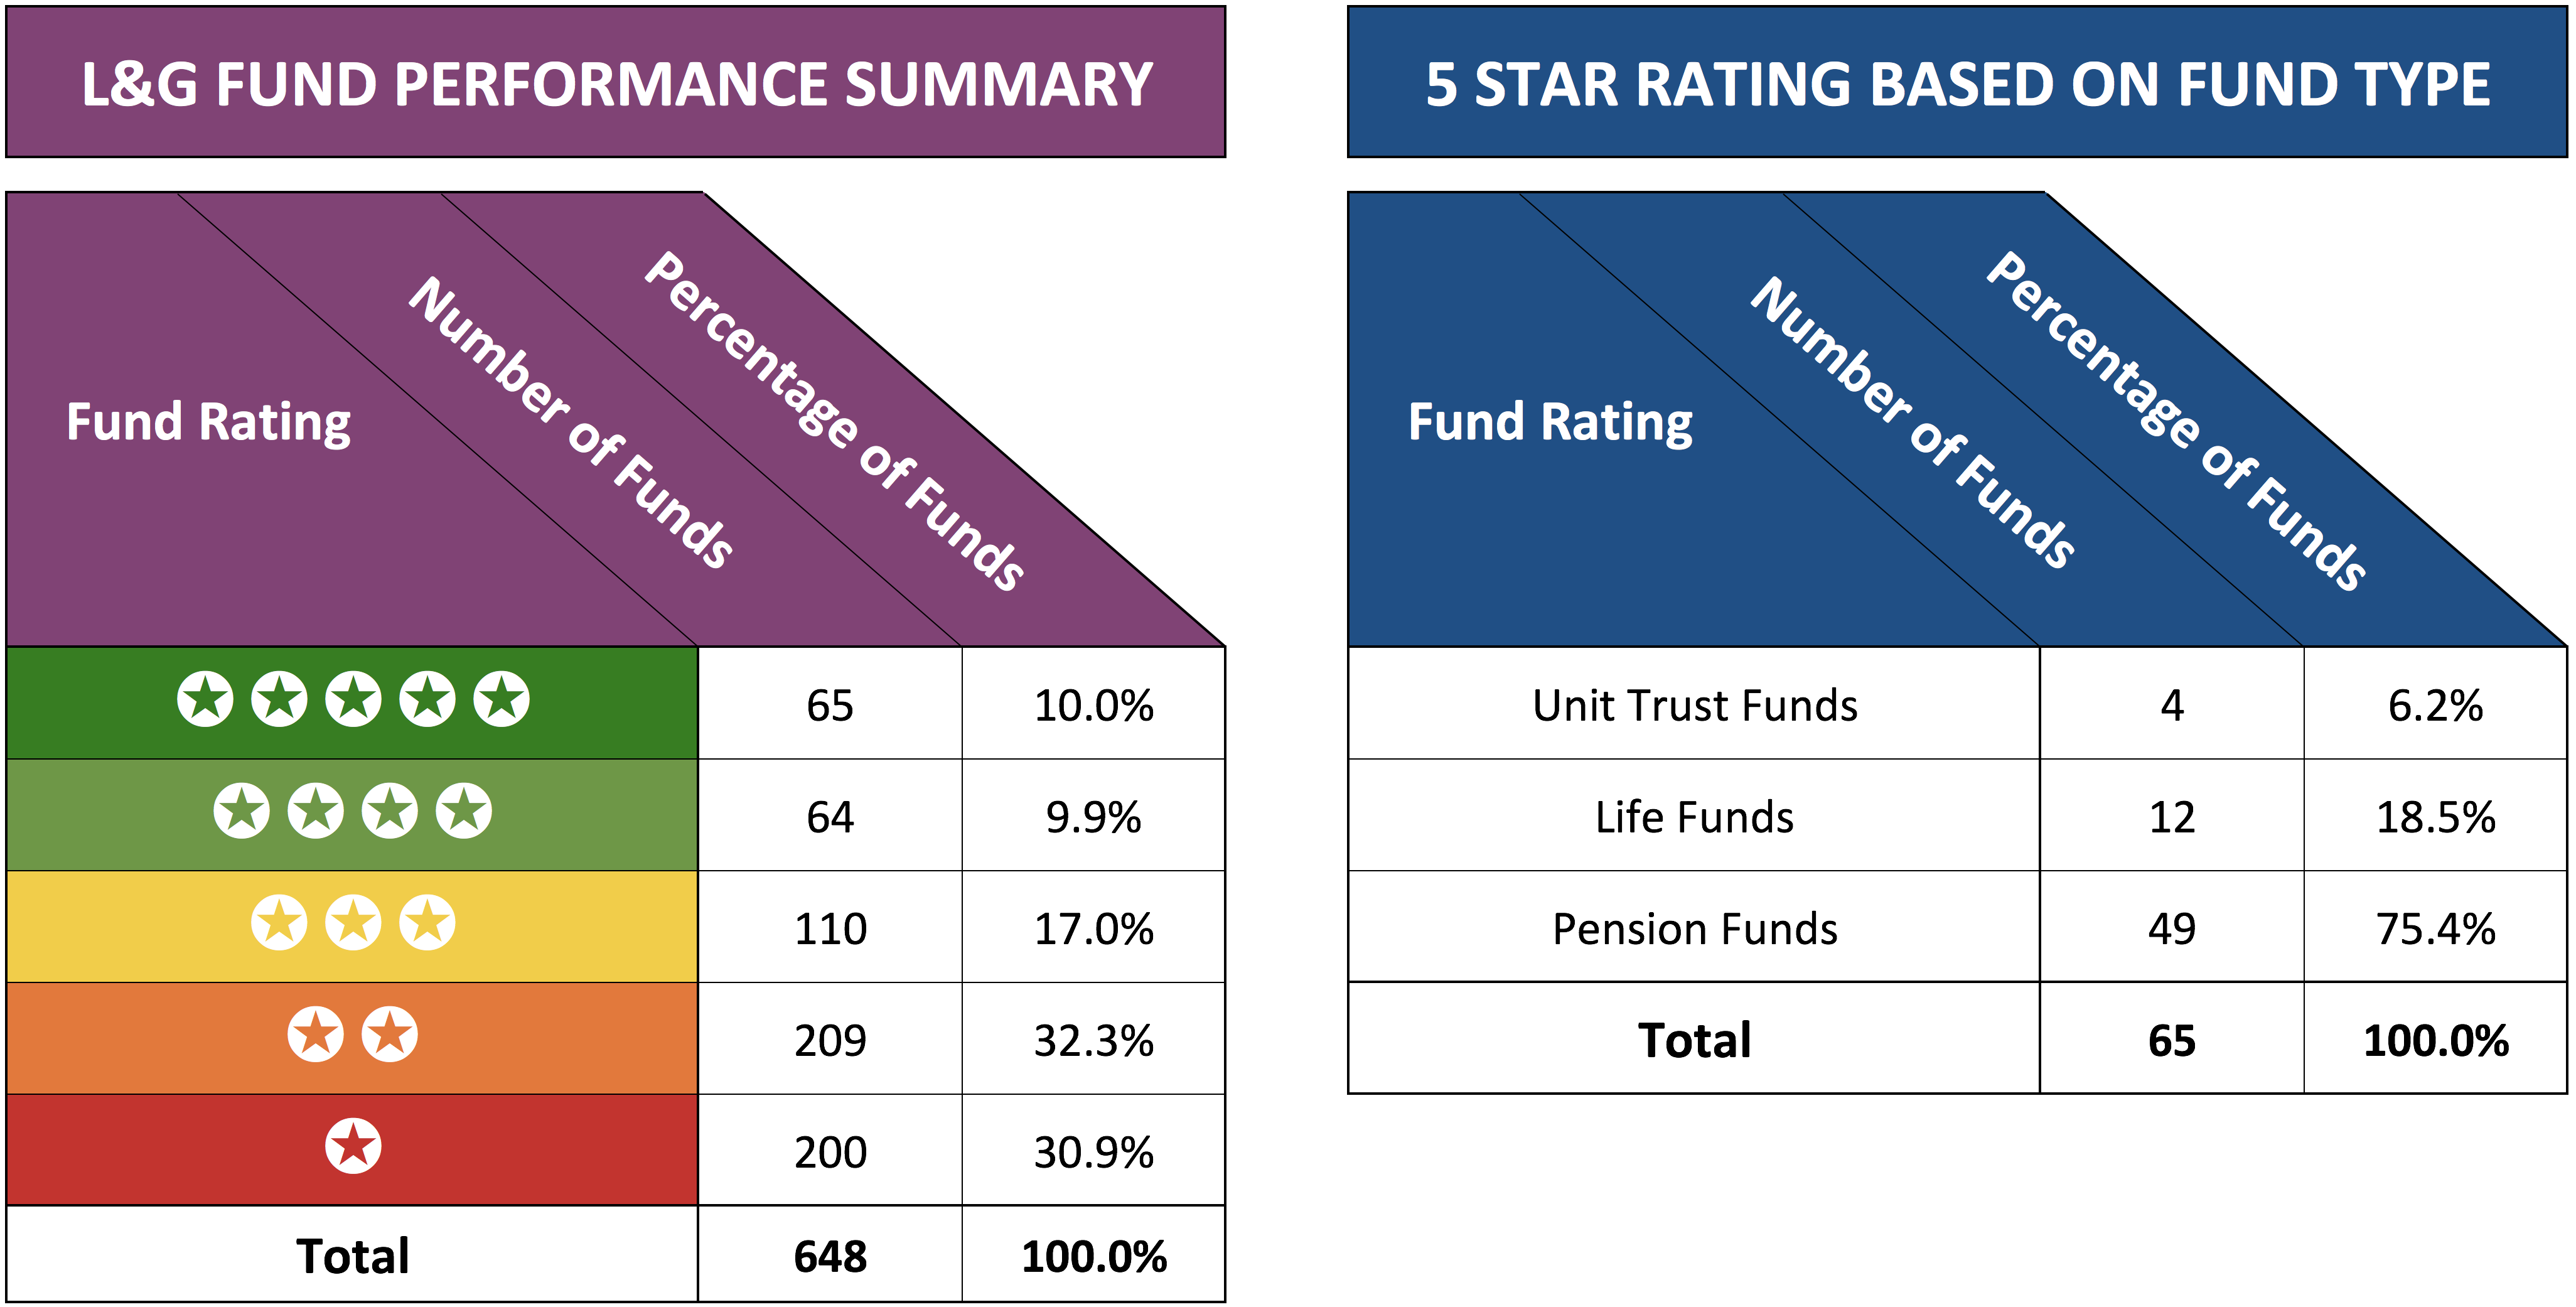 L&G Fund performance summary